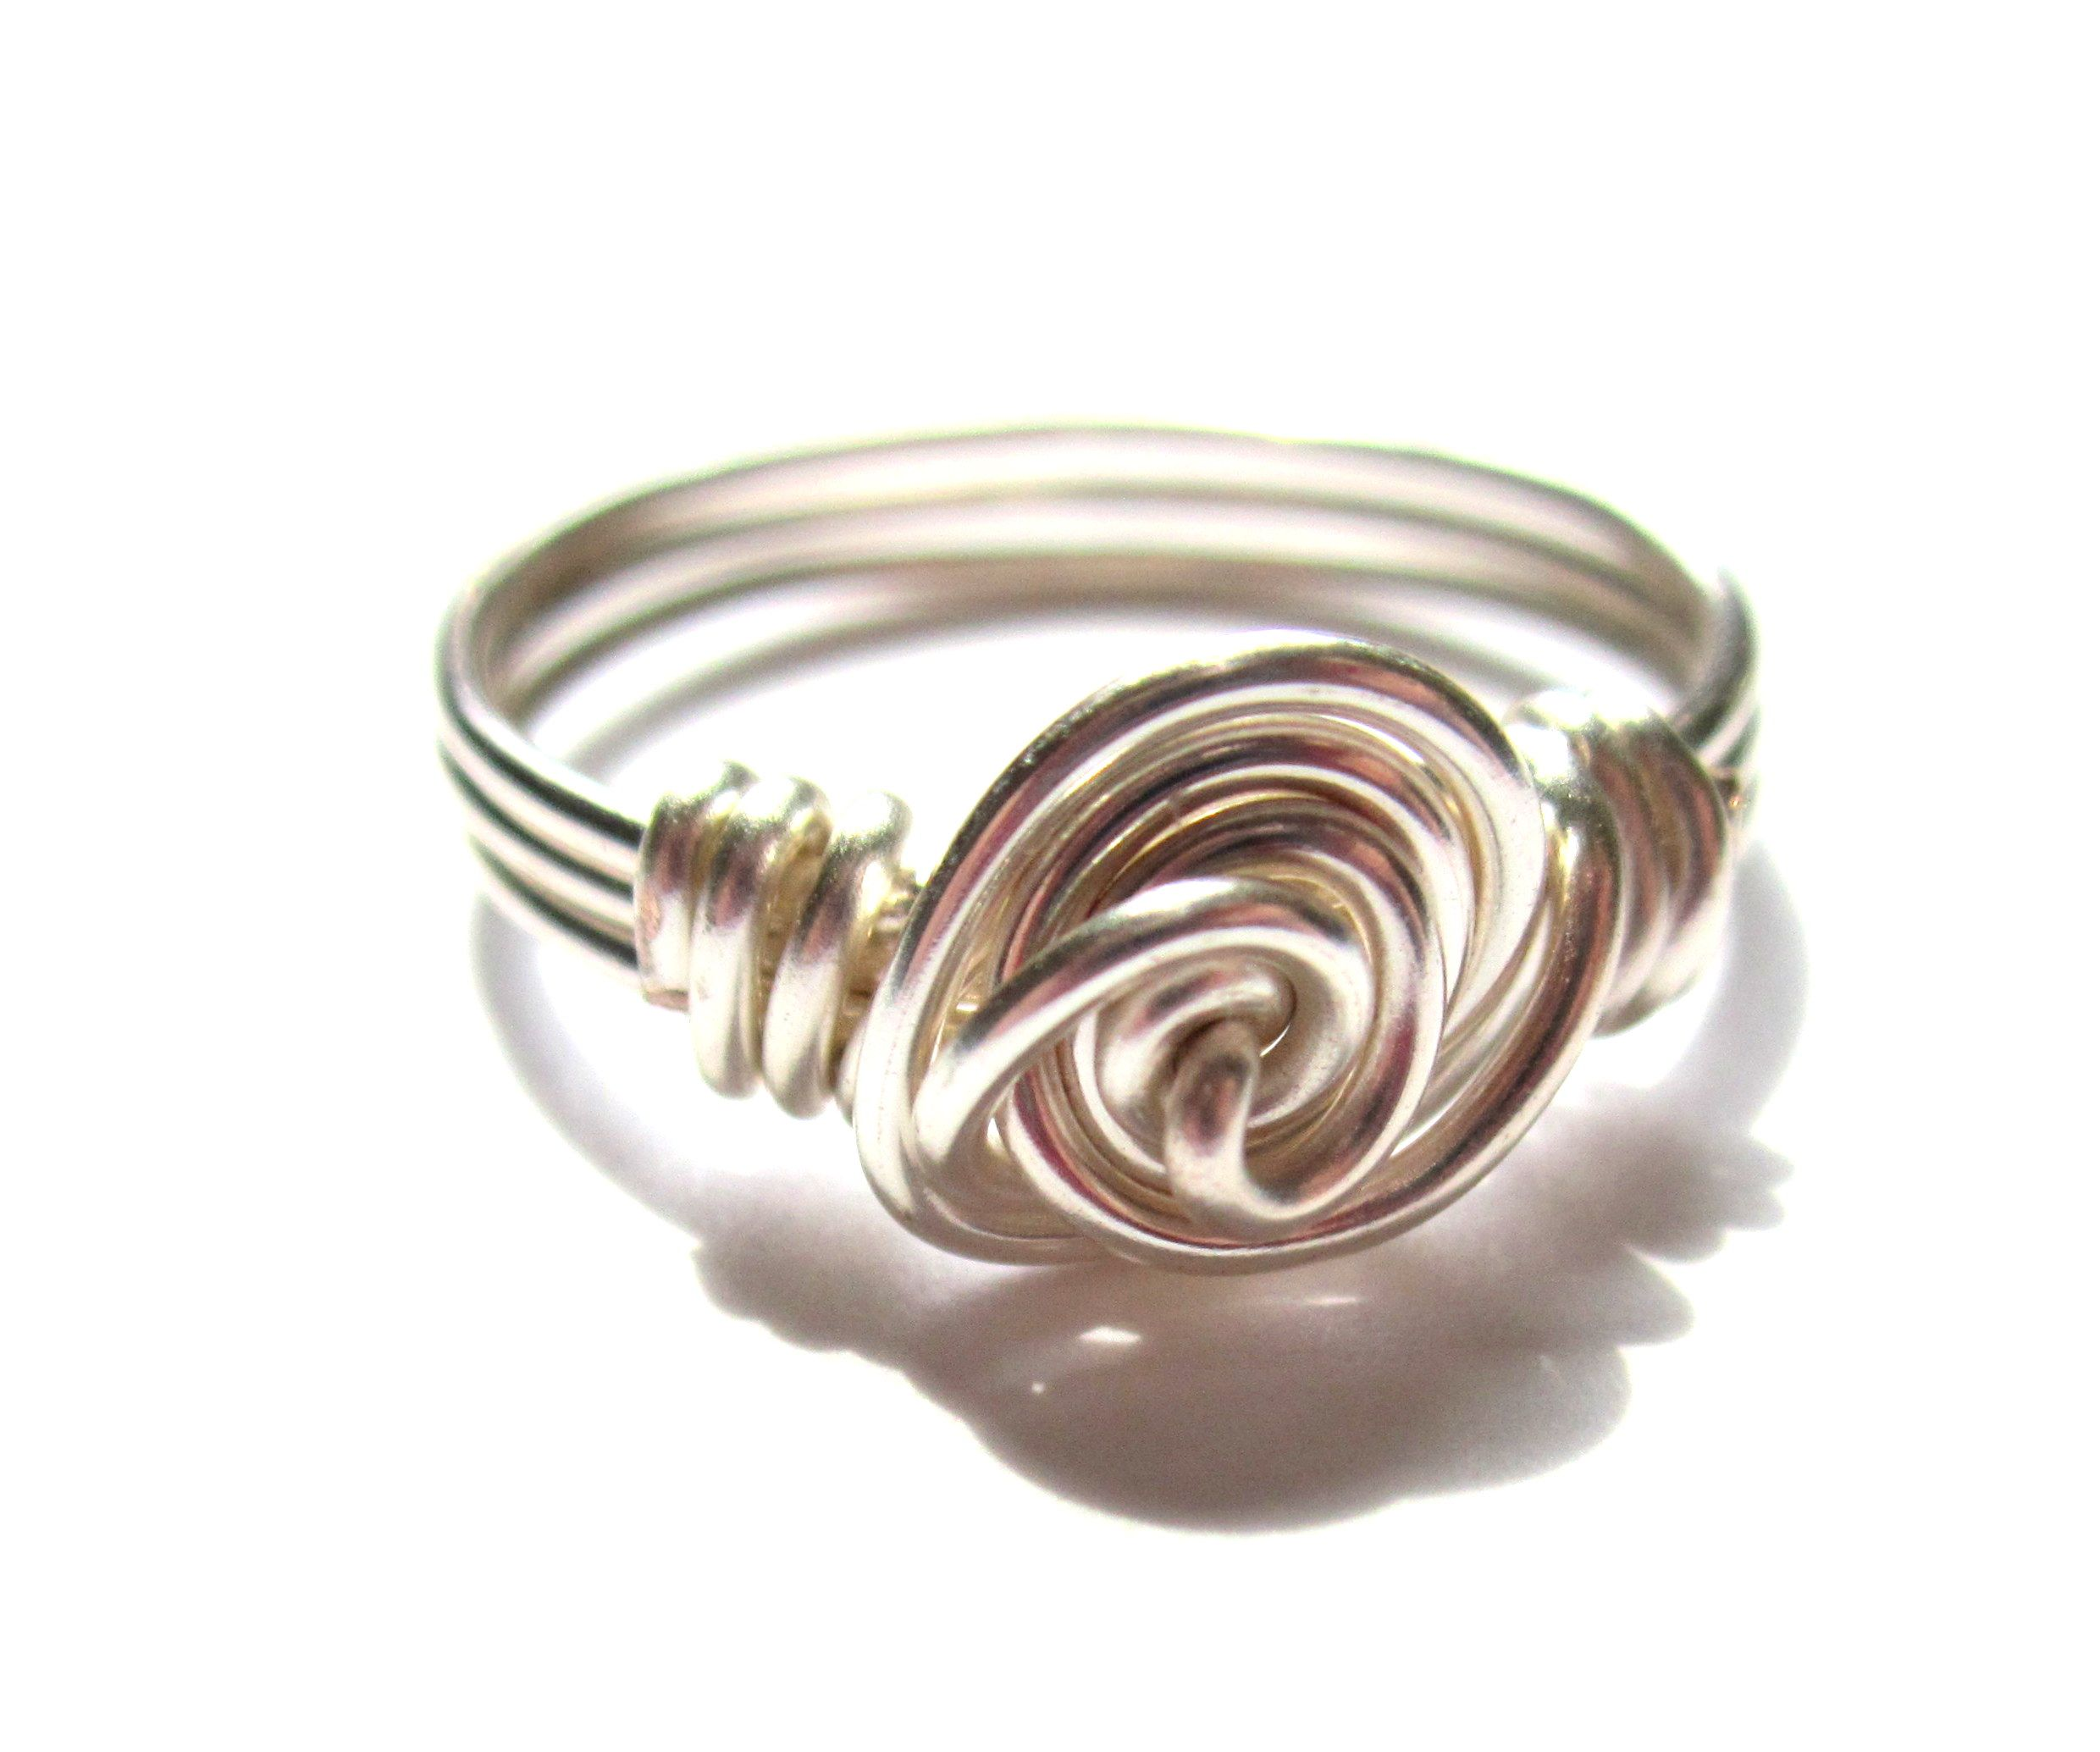 Wire Wrapped Rose Ring Tutorial | DIY Jewelry Making | Pinterest ...